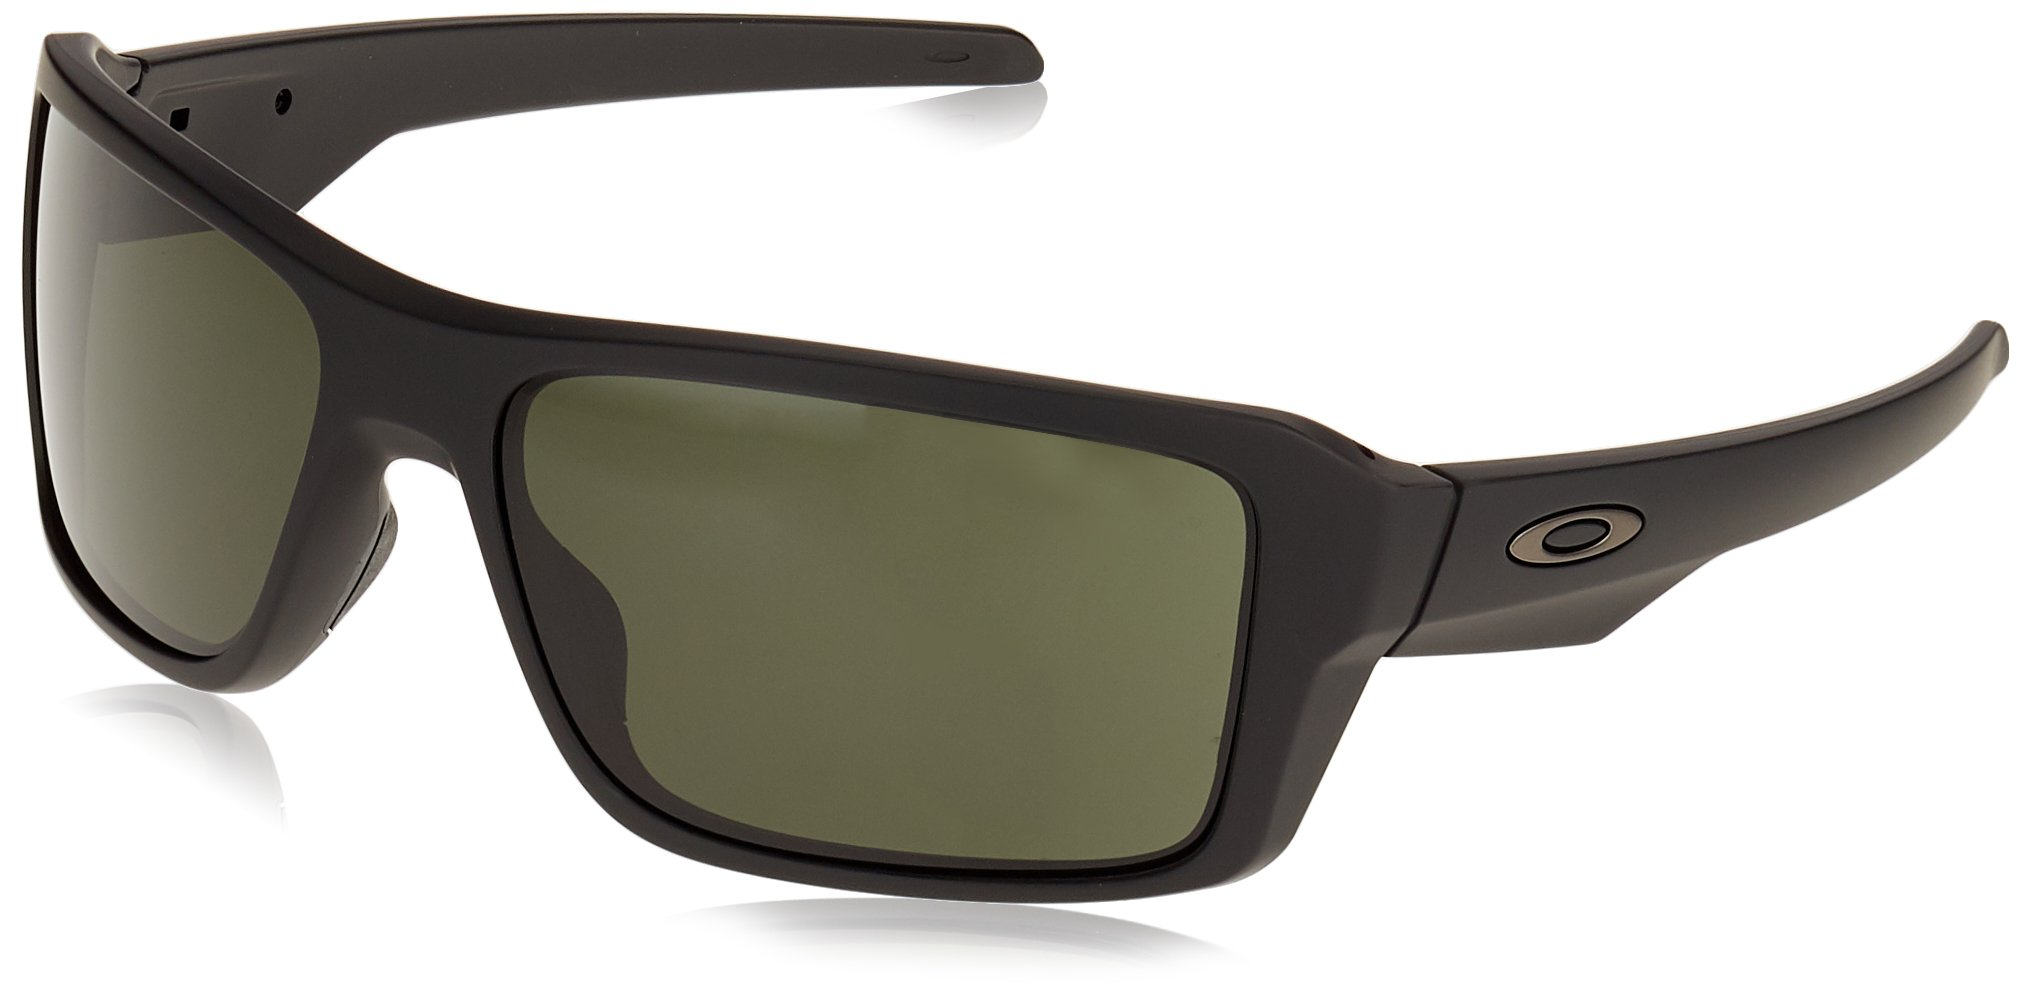 Oakley Men's Double Edge Rectangular Sunglasses MATTE BLACK 66.01 mm